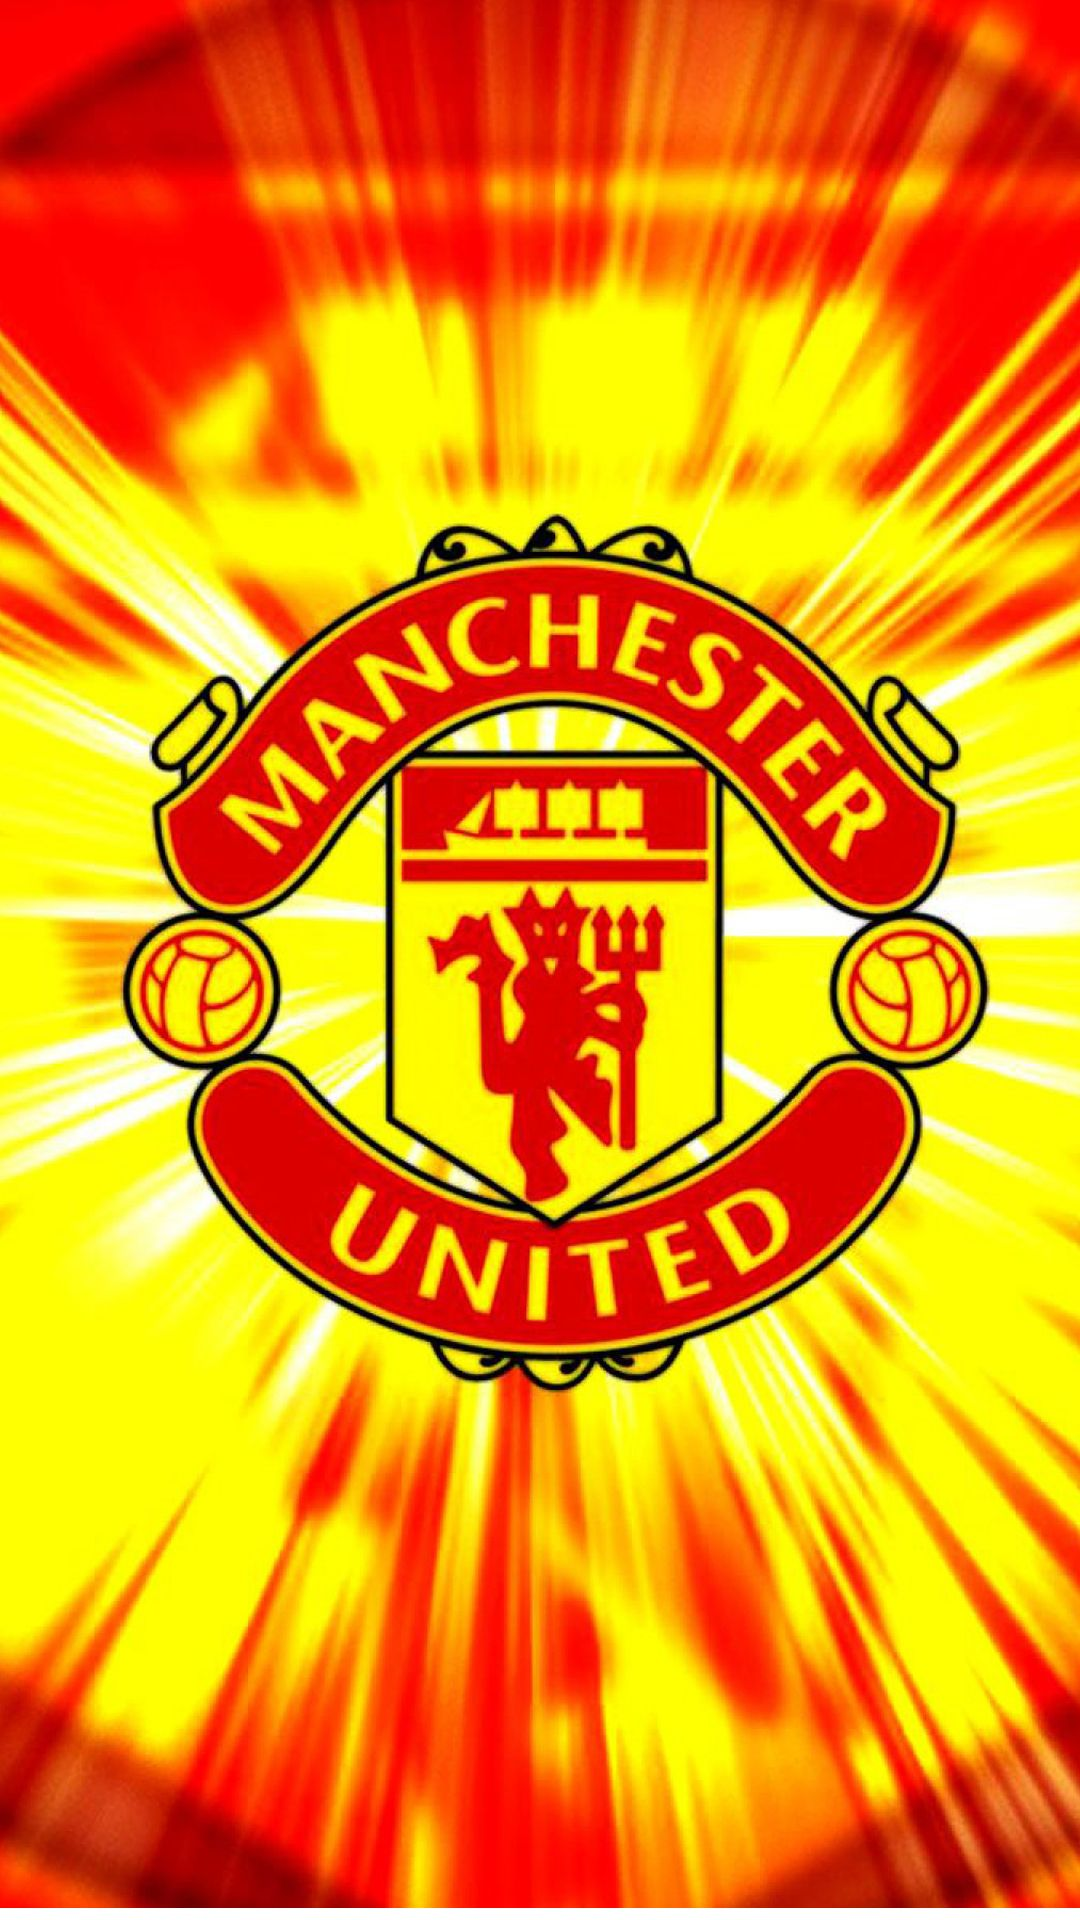 Apple Iphone 6 Plus Hd Wallpaper Manchester United In With Red And Yellow Background Appleiphone6plus Appleiphone6wallpaper Iphone6plus Manches Nghệ Thuật